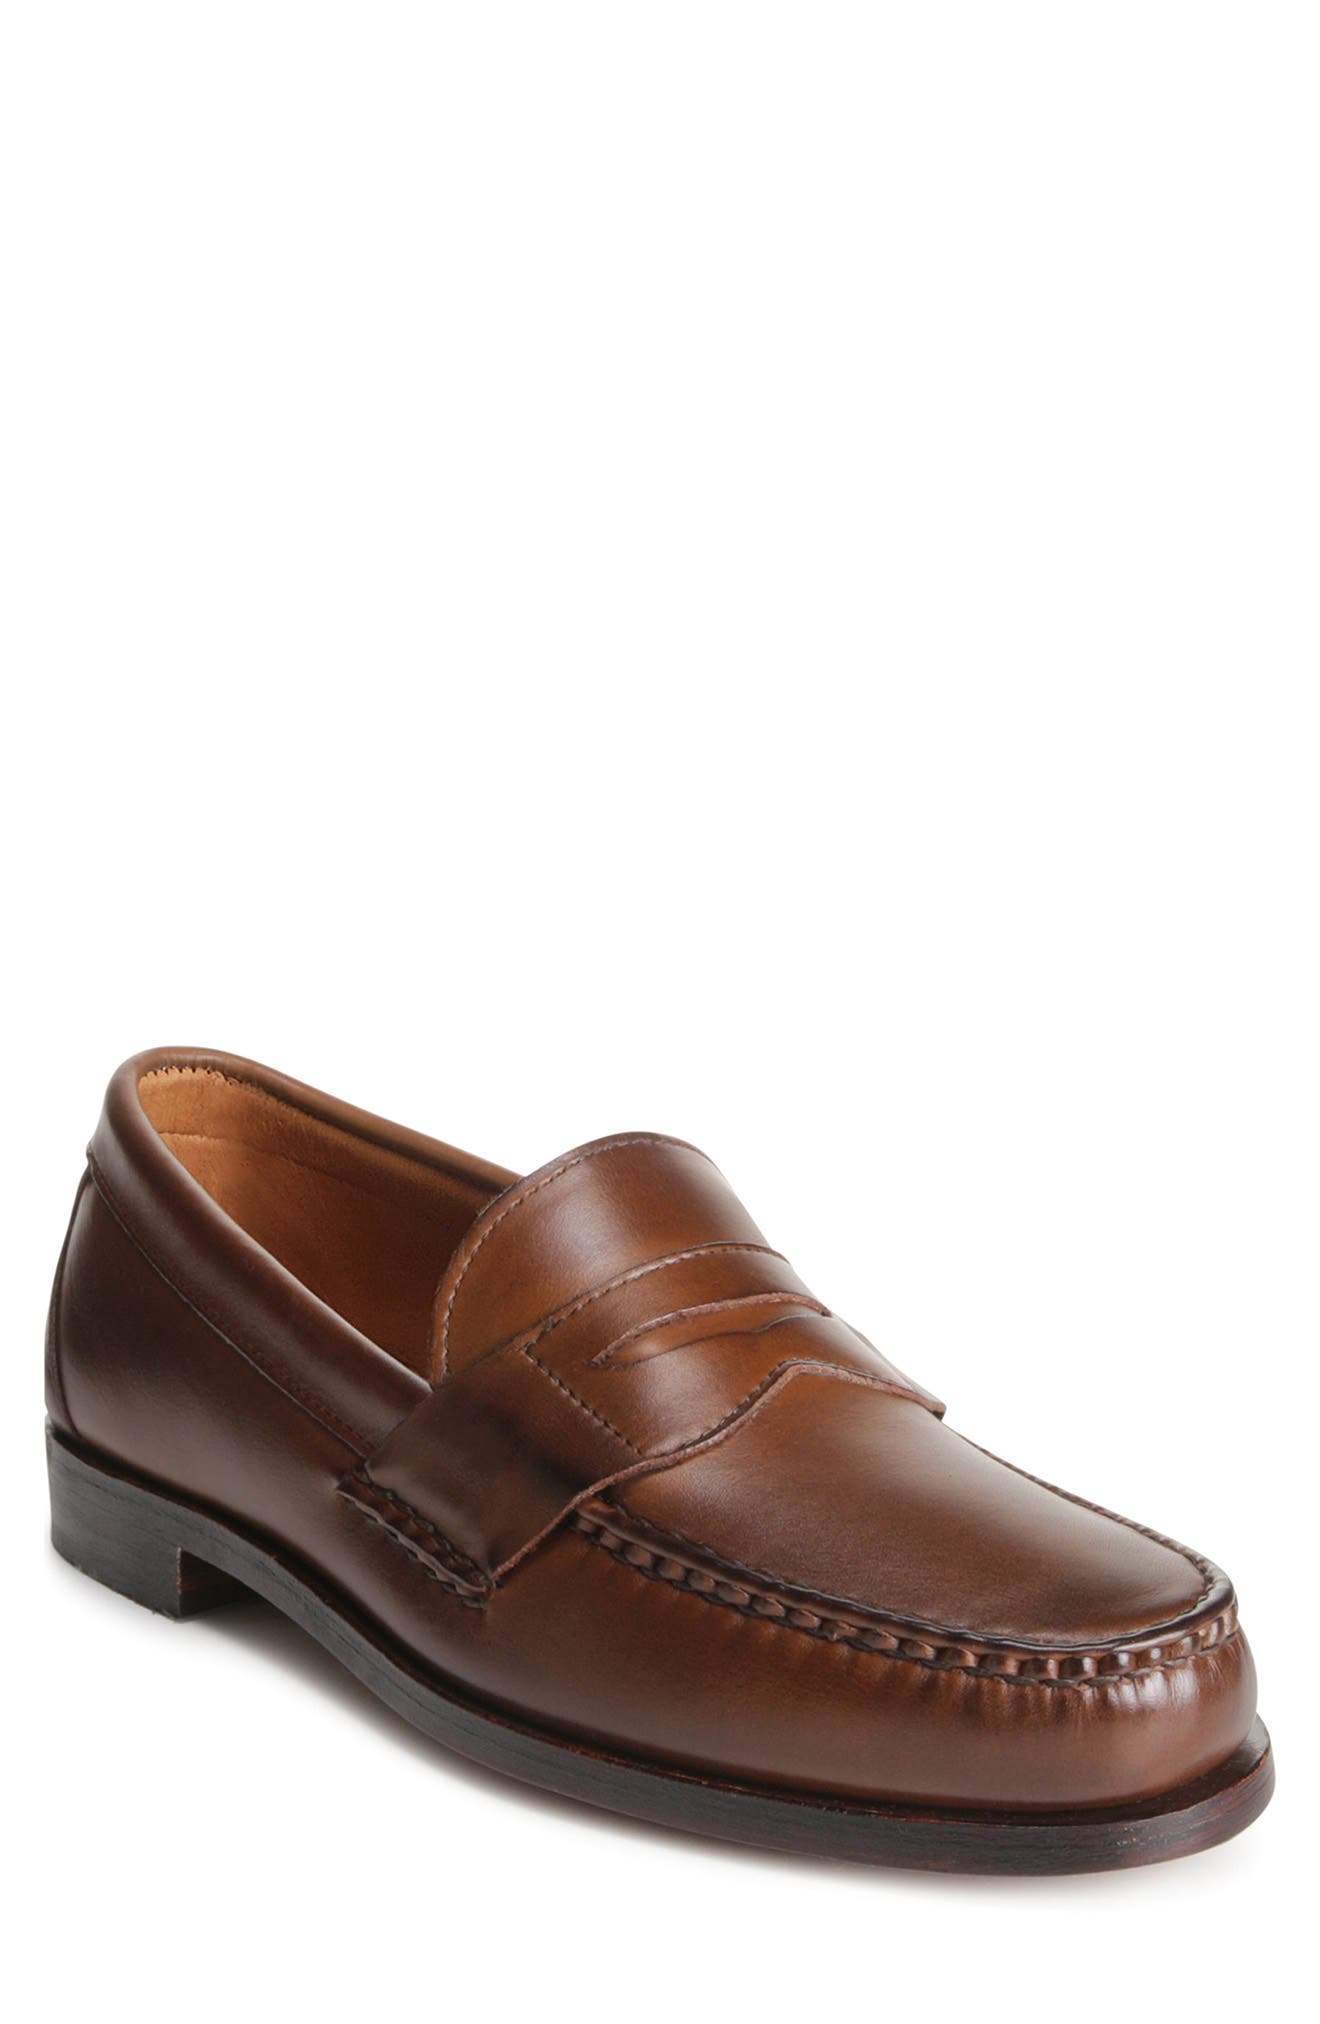 Smooth leather and a sharp penny strap define a hand-sewn loafer crafted with a semi-round moc toe and slightly shorter vamp for a fuller fit across the ball of the foot. Style Name: Allen Edmonds \\\'Cavanaugh\\\' Penny Loafer (Men). Style Number: 888867. Available in stores.